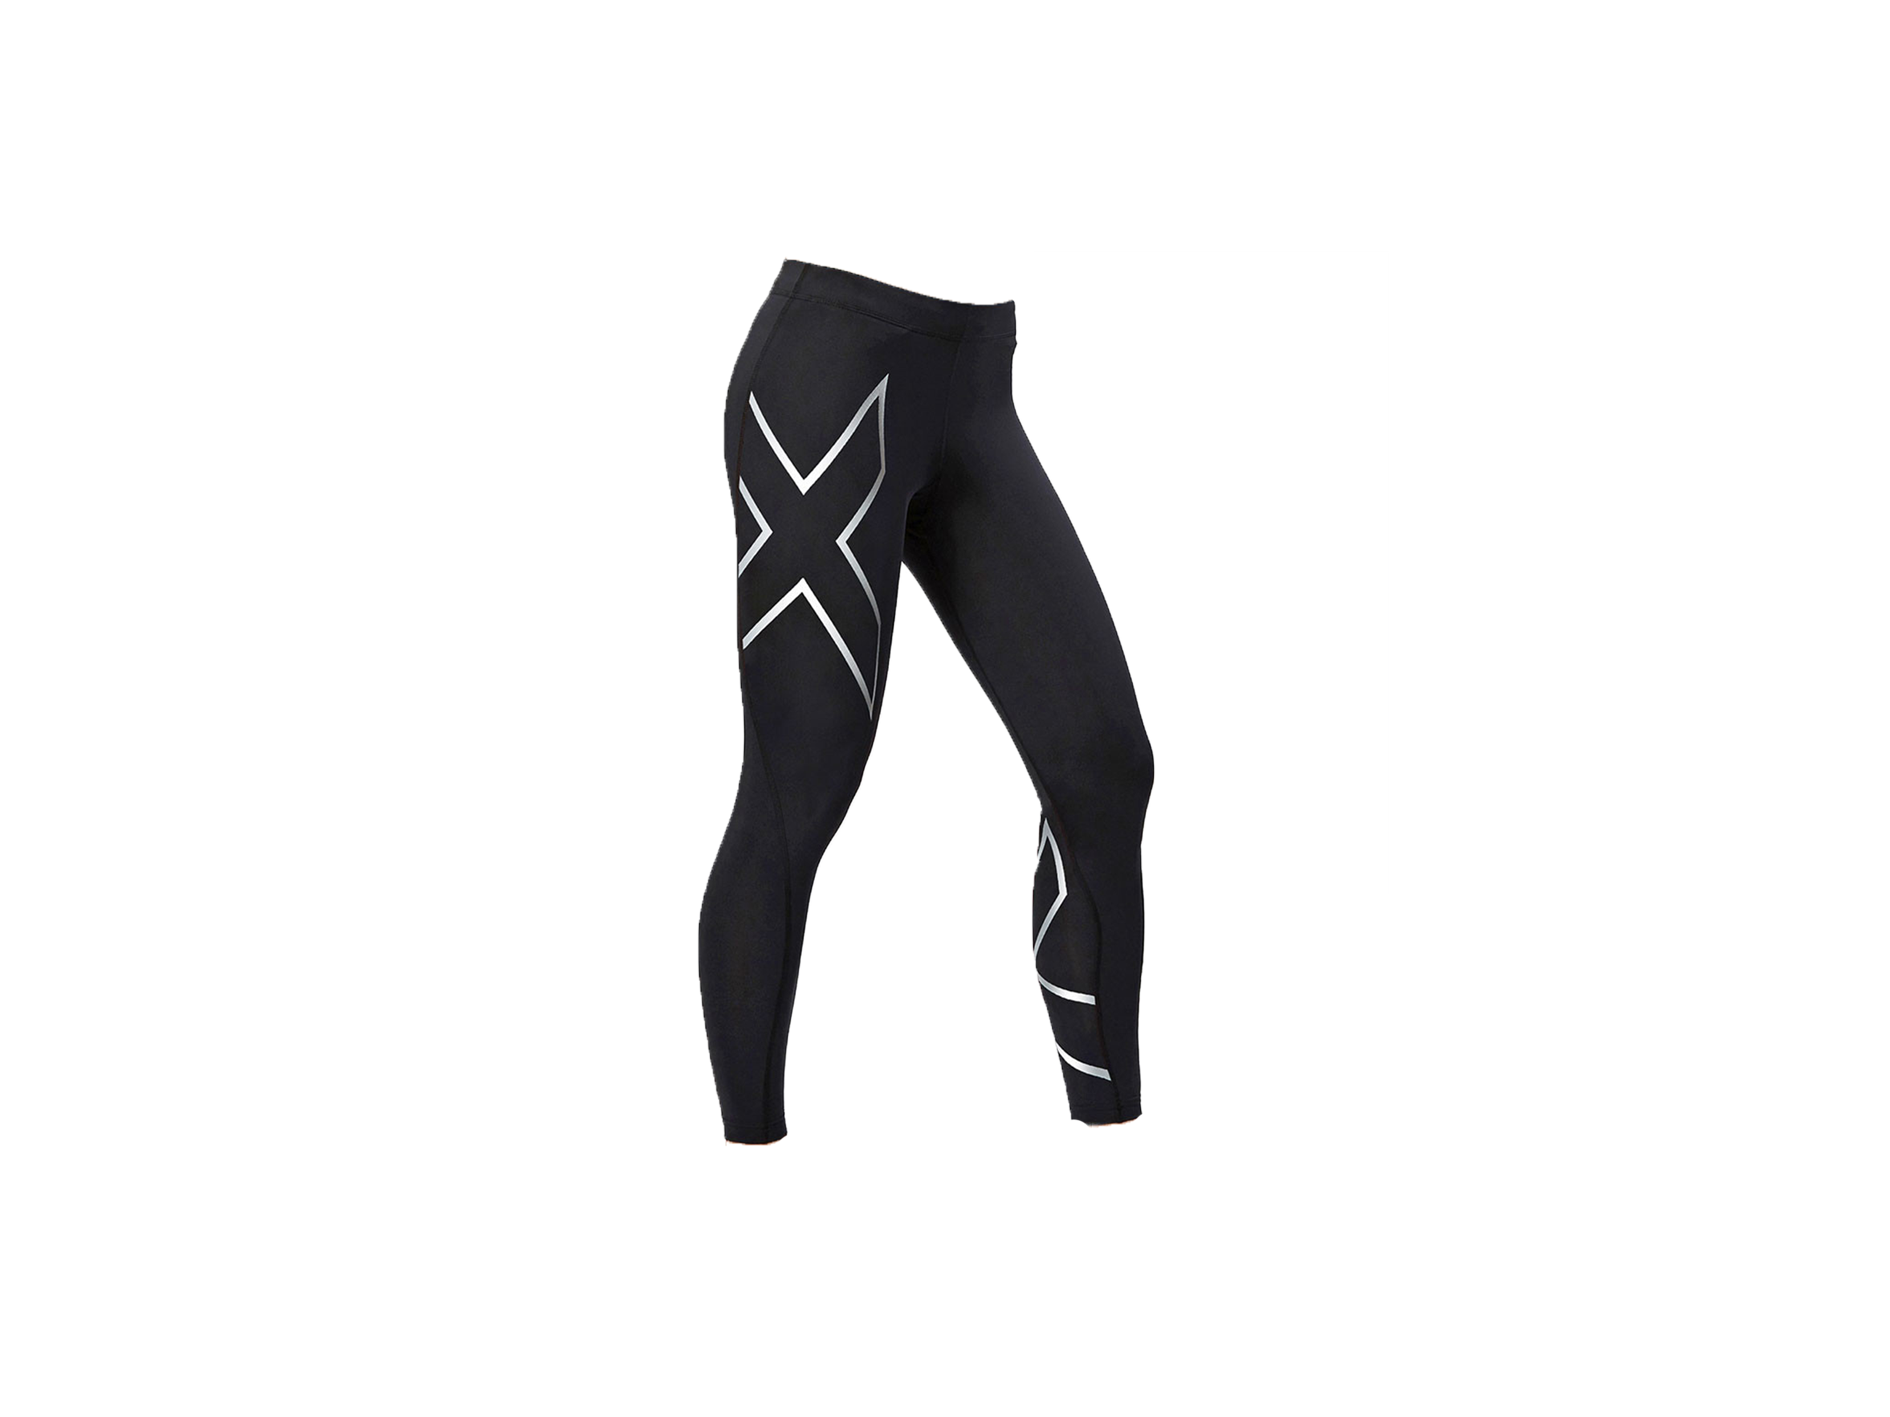 Yoga Tight Zensah Womens High Waisted Tights Best Tight Workout Running Compression Tights